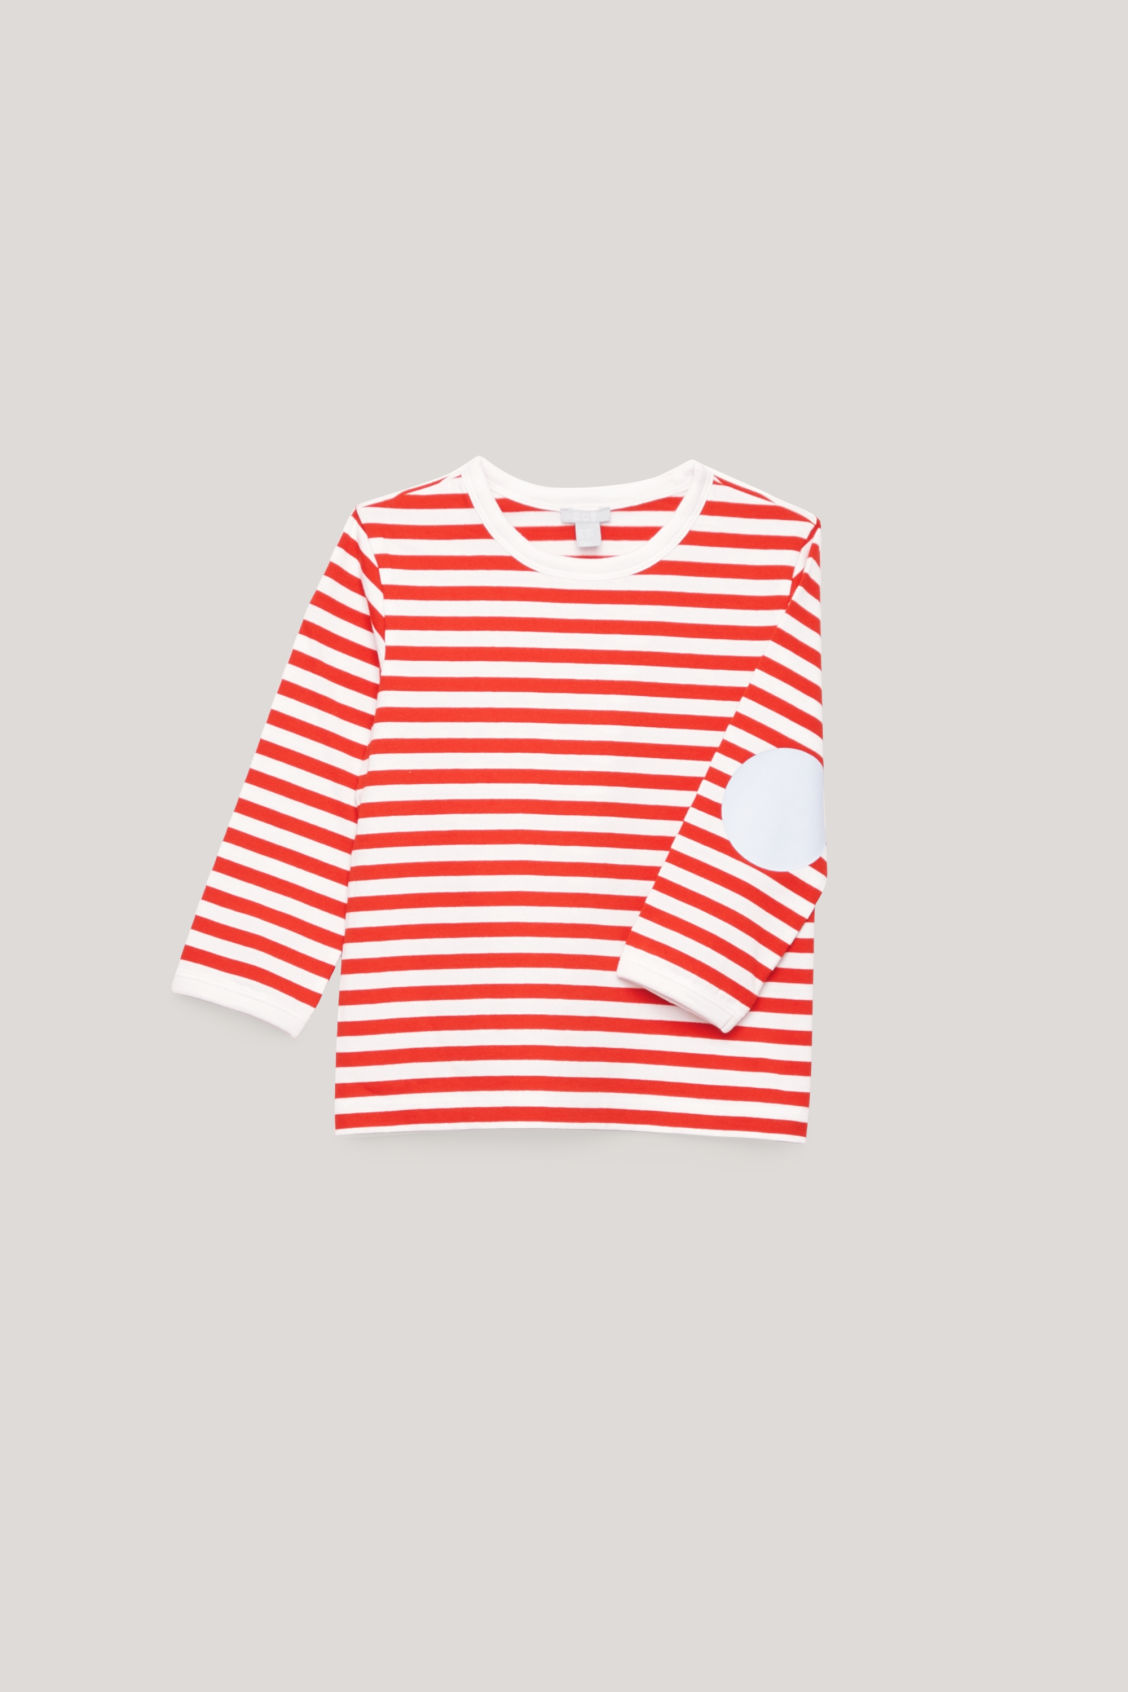 Detailed image of Cos striped top with elbow patches in orange